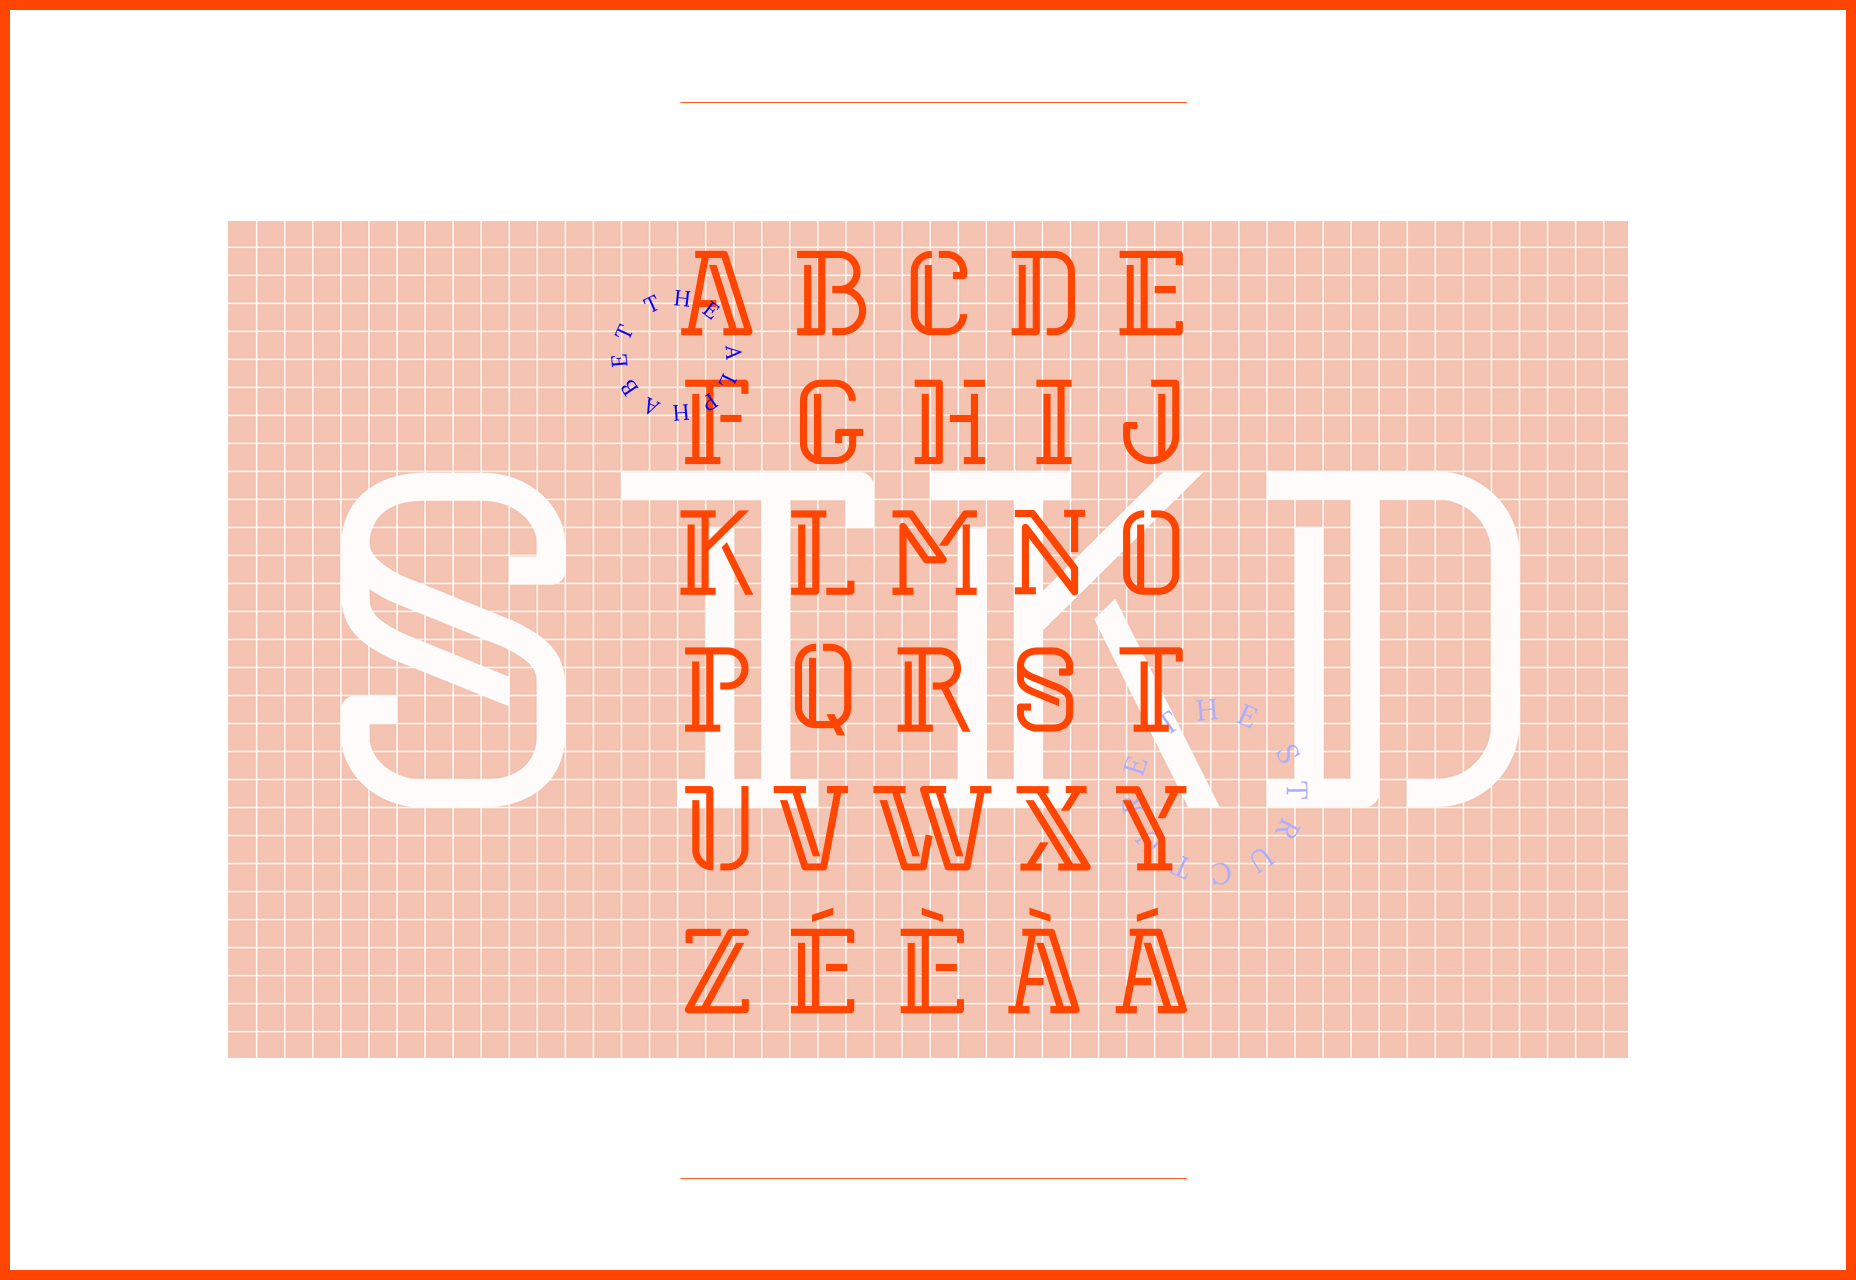 Stoked: Side Offset Featured Typeface